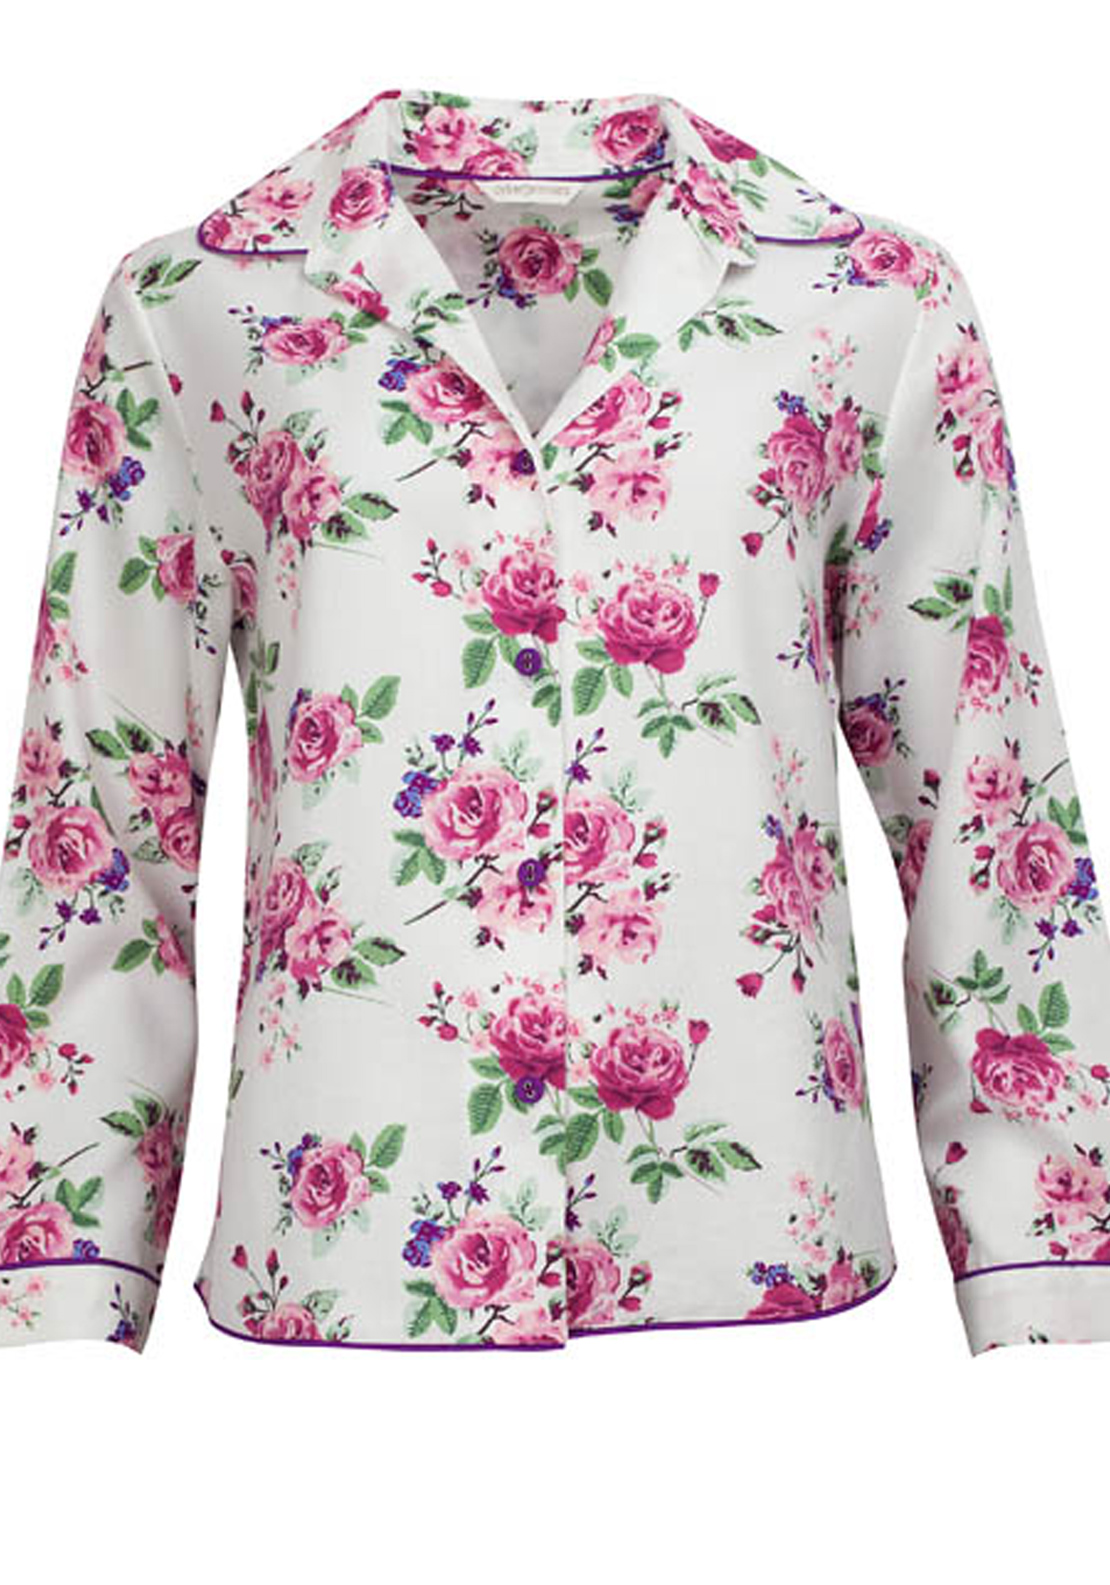 Cyberjammies Rose Floral Print Pyjama Top, Cream Multi